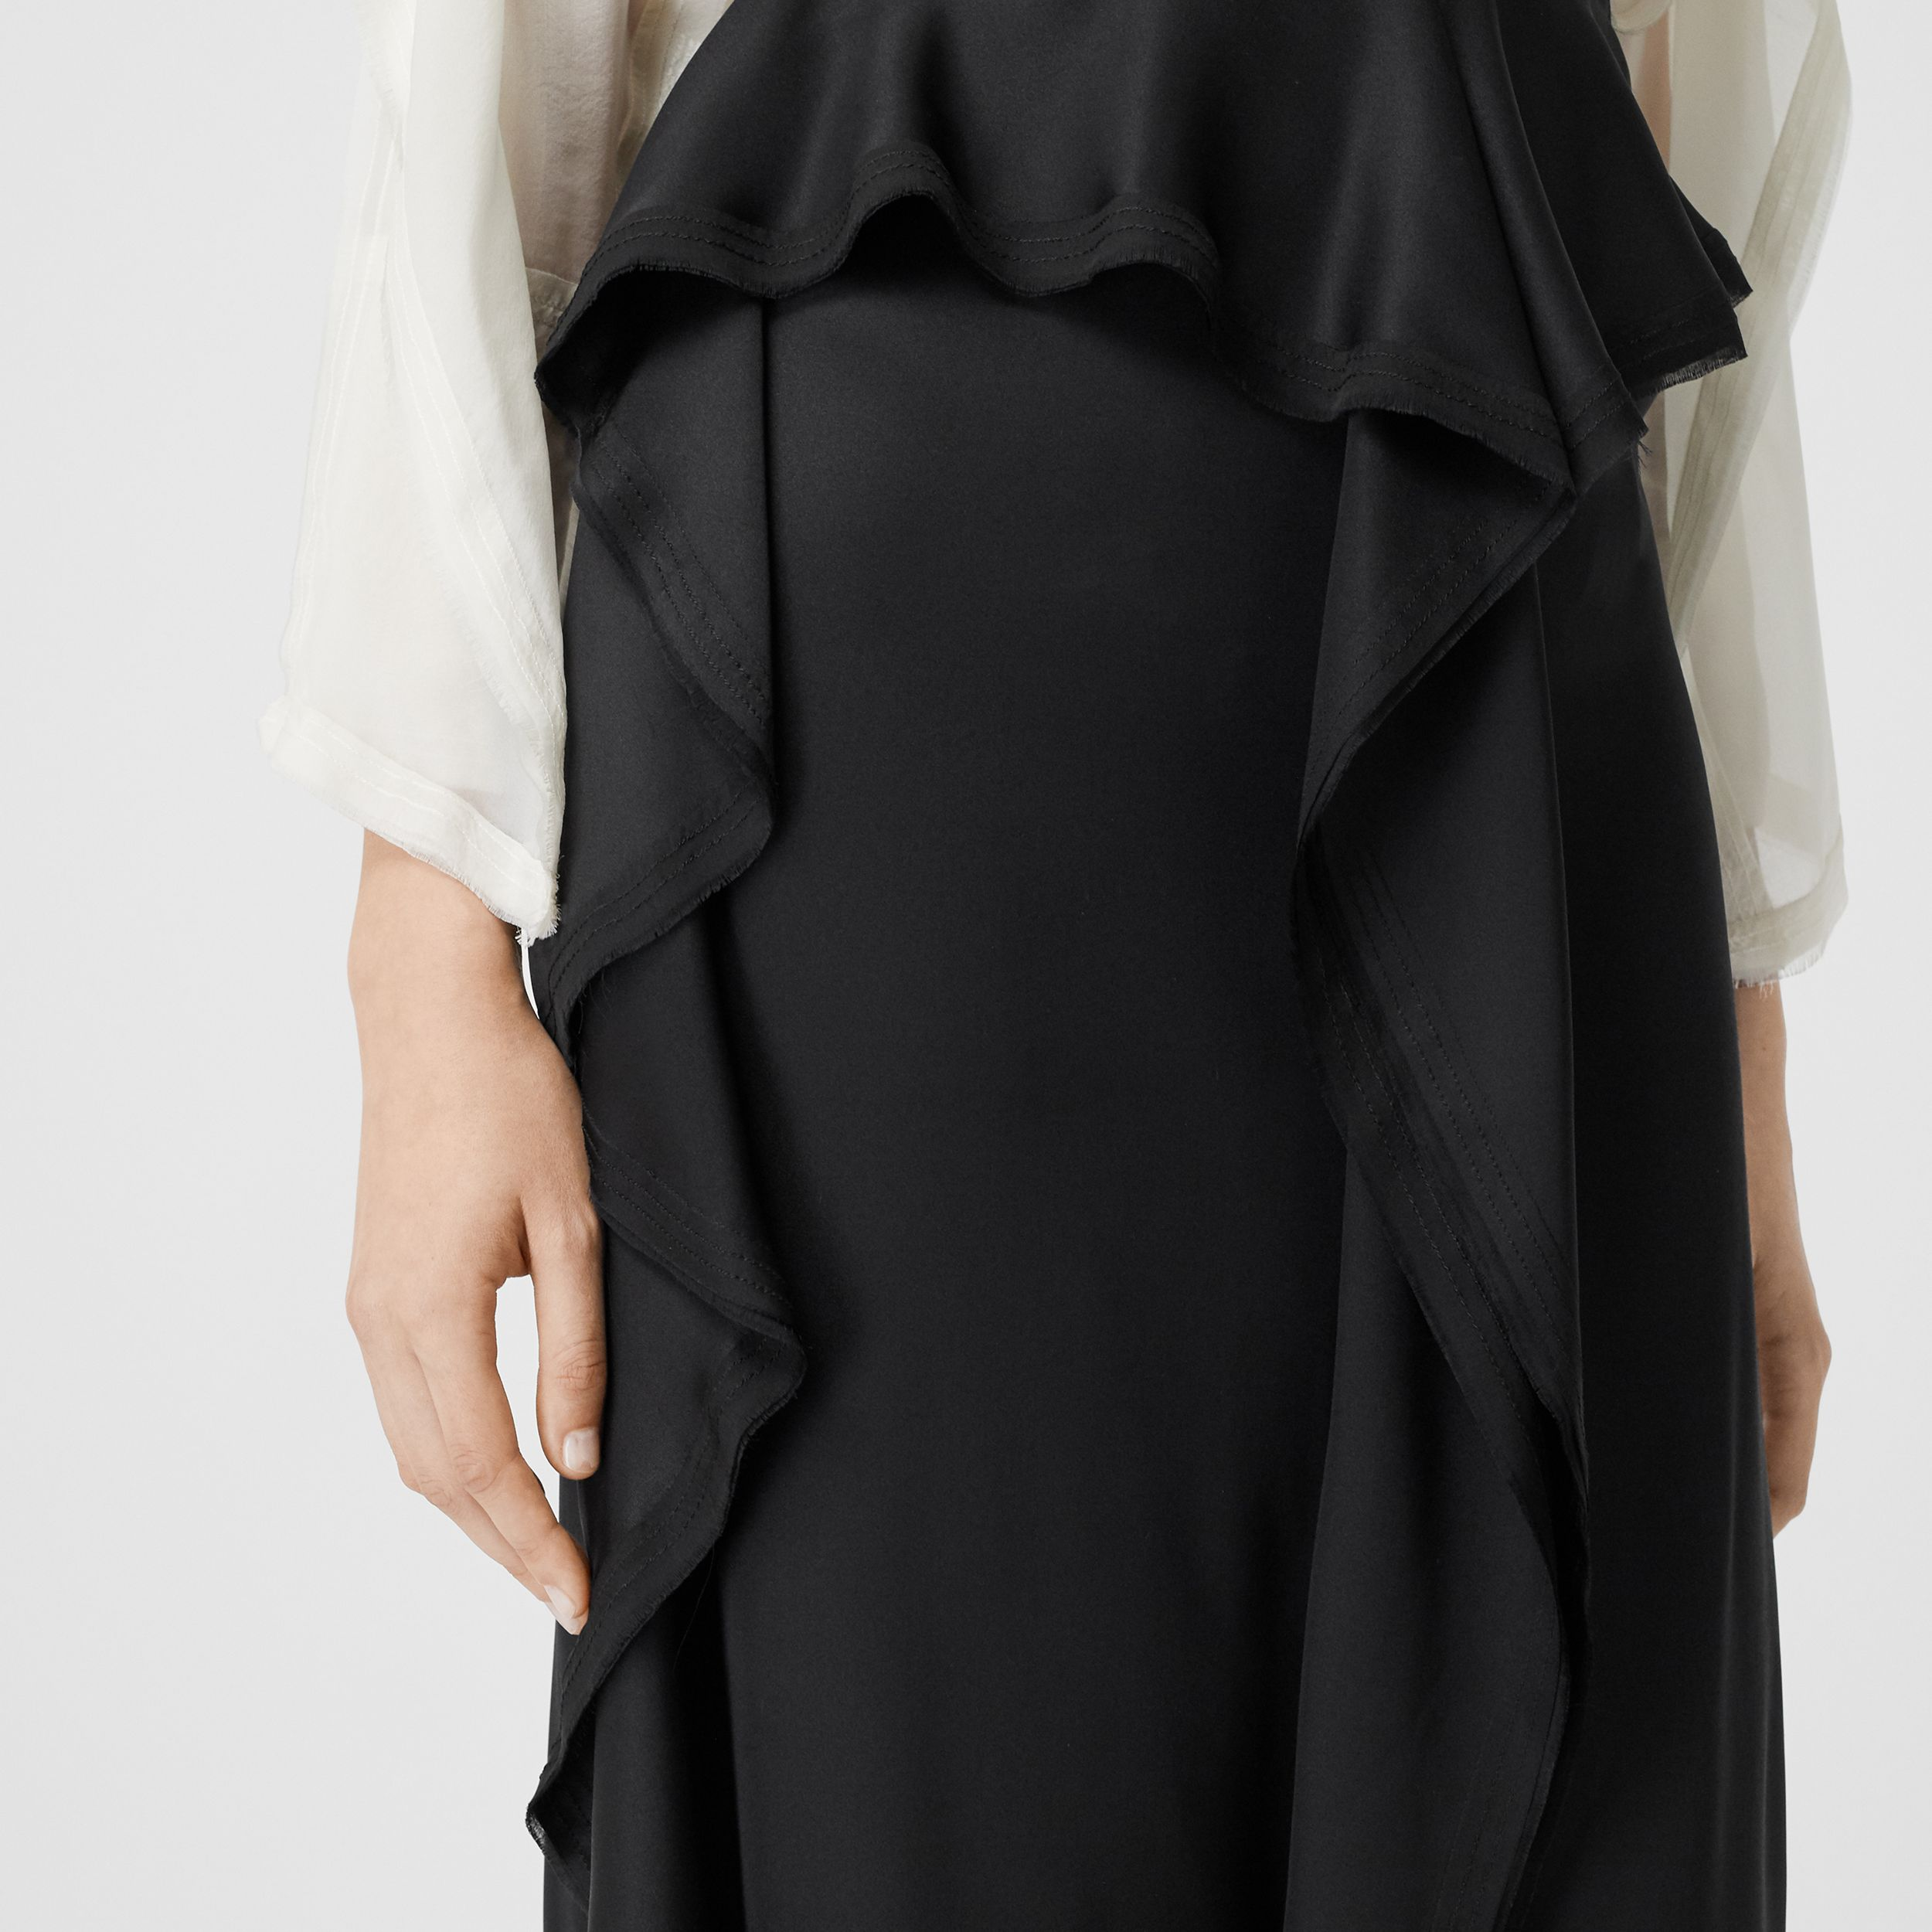 Ruffle Detail Silk Satin Pencil Skirt in Black - Women | Burberry - 2